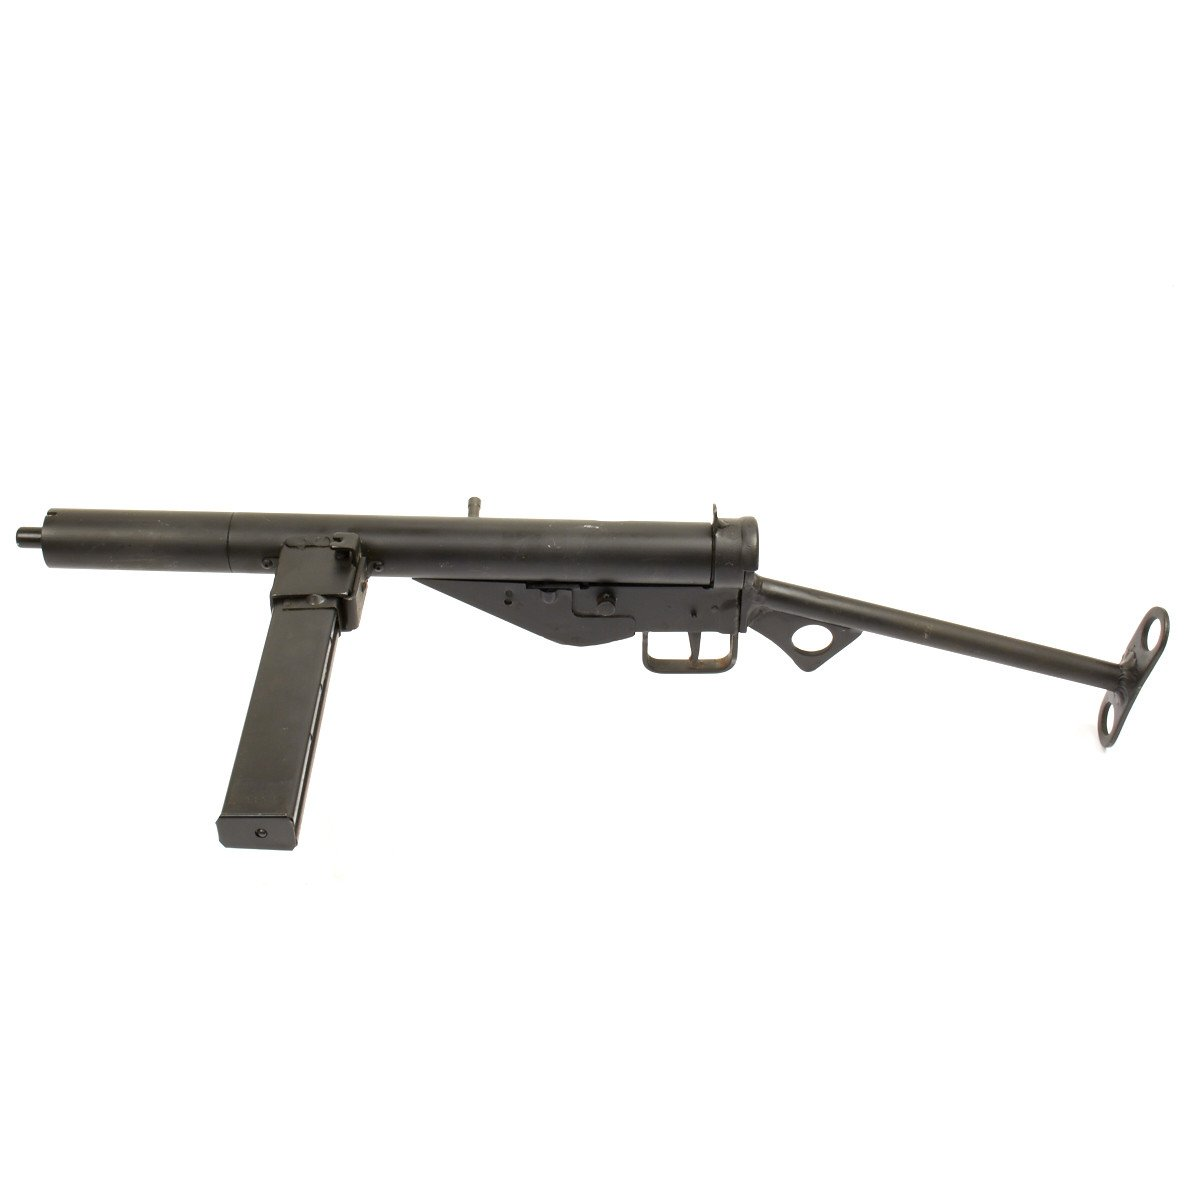 Original British WWII Sten MkIII Display SMG – International